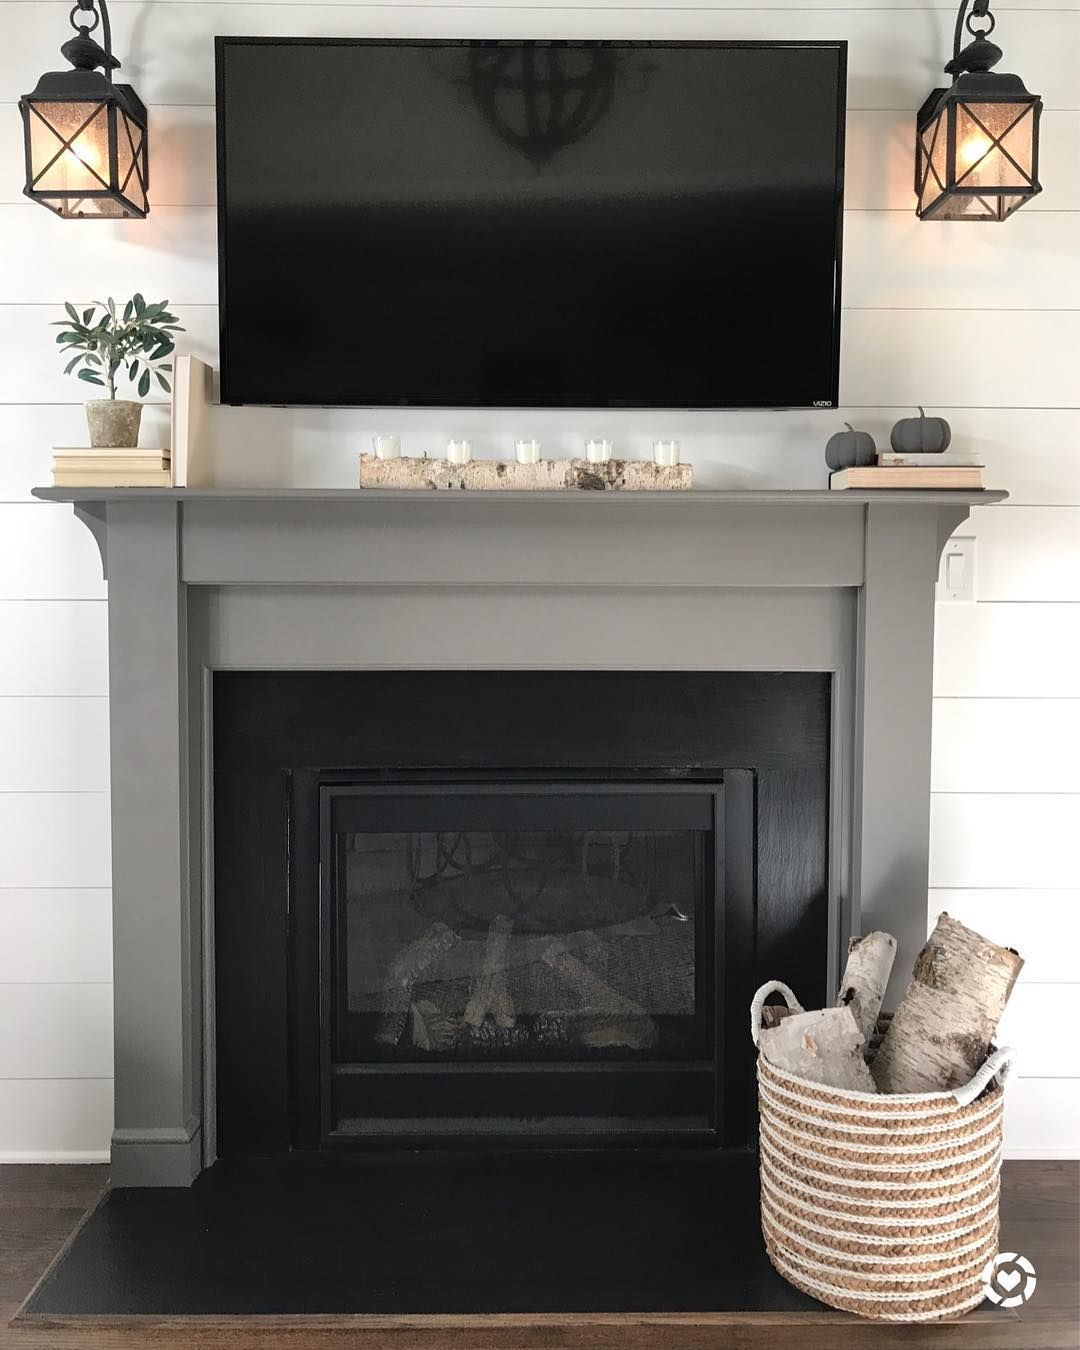 Fireplace Is Sherwin Williams Gauntlet Gray Painted Fireplace